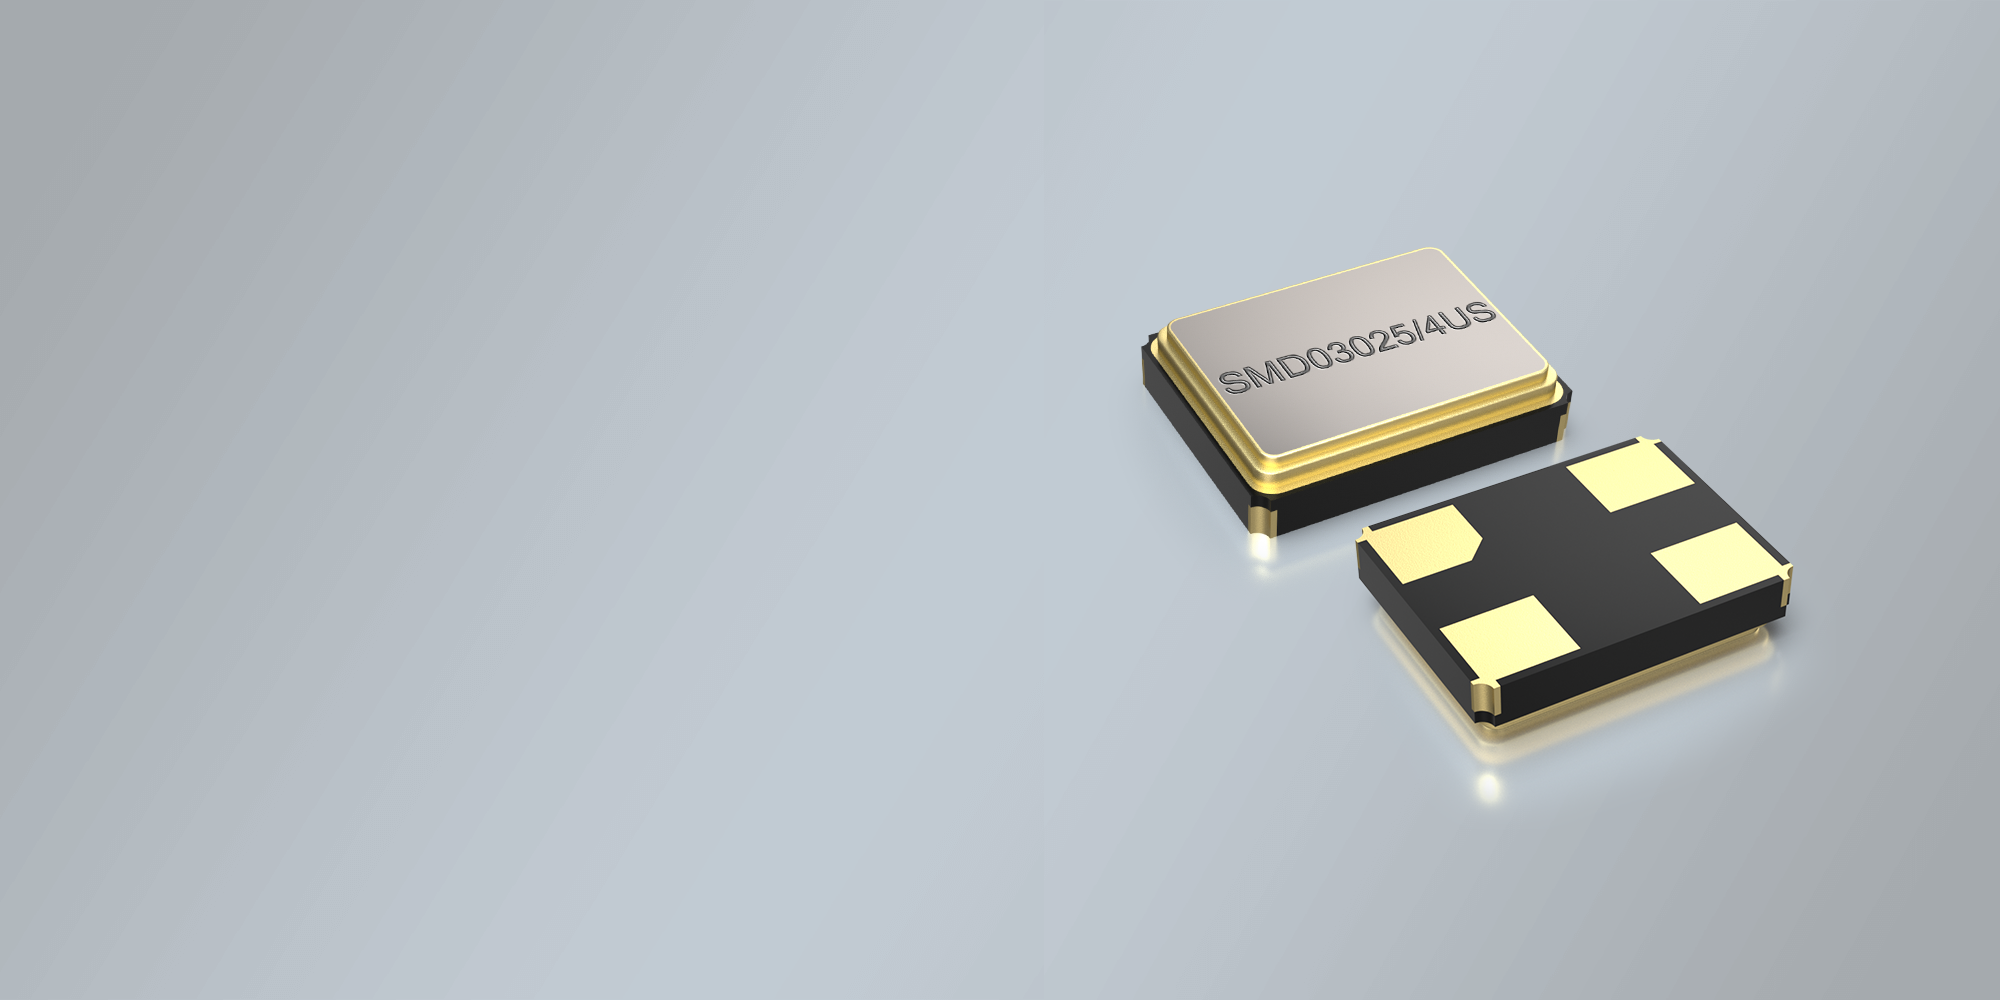 SMD QUARZ 3,2 x 2,5 mm 12.0 - 40.0 MHz ULTRASCHALL